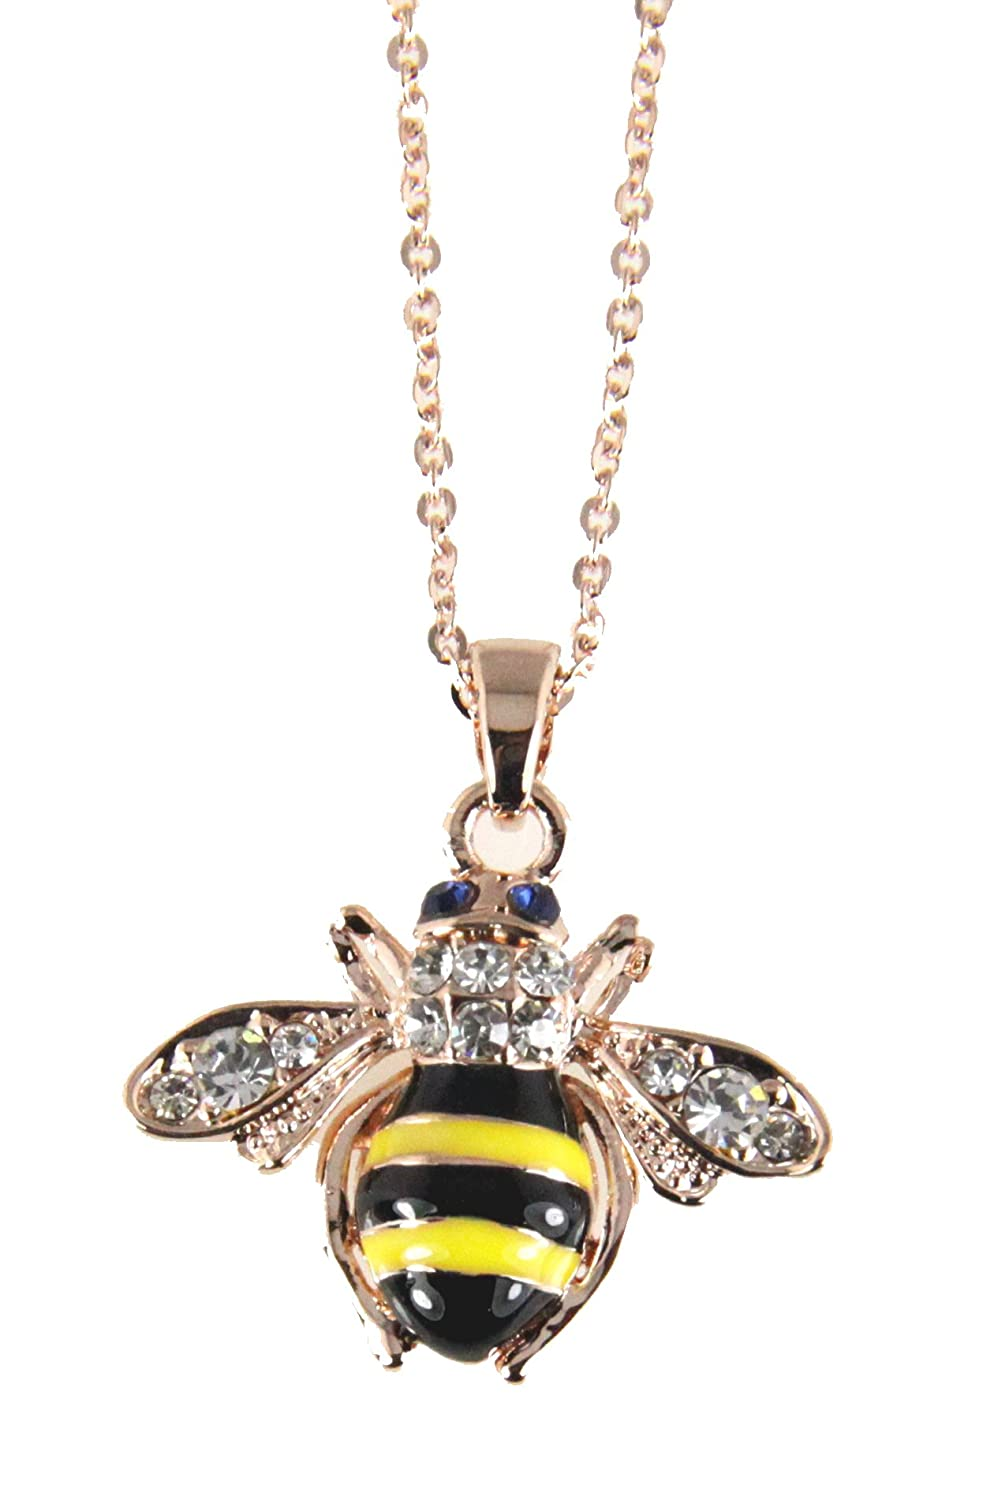 silver success sterling mantra pendant necklace gold bumble luck bee and bumblebee